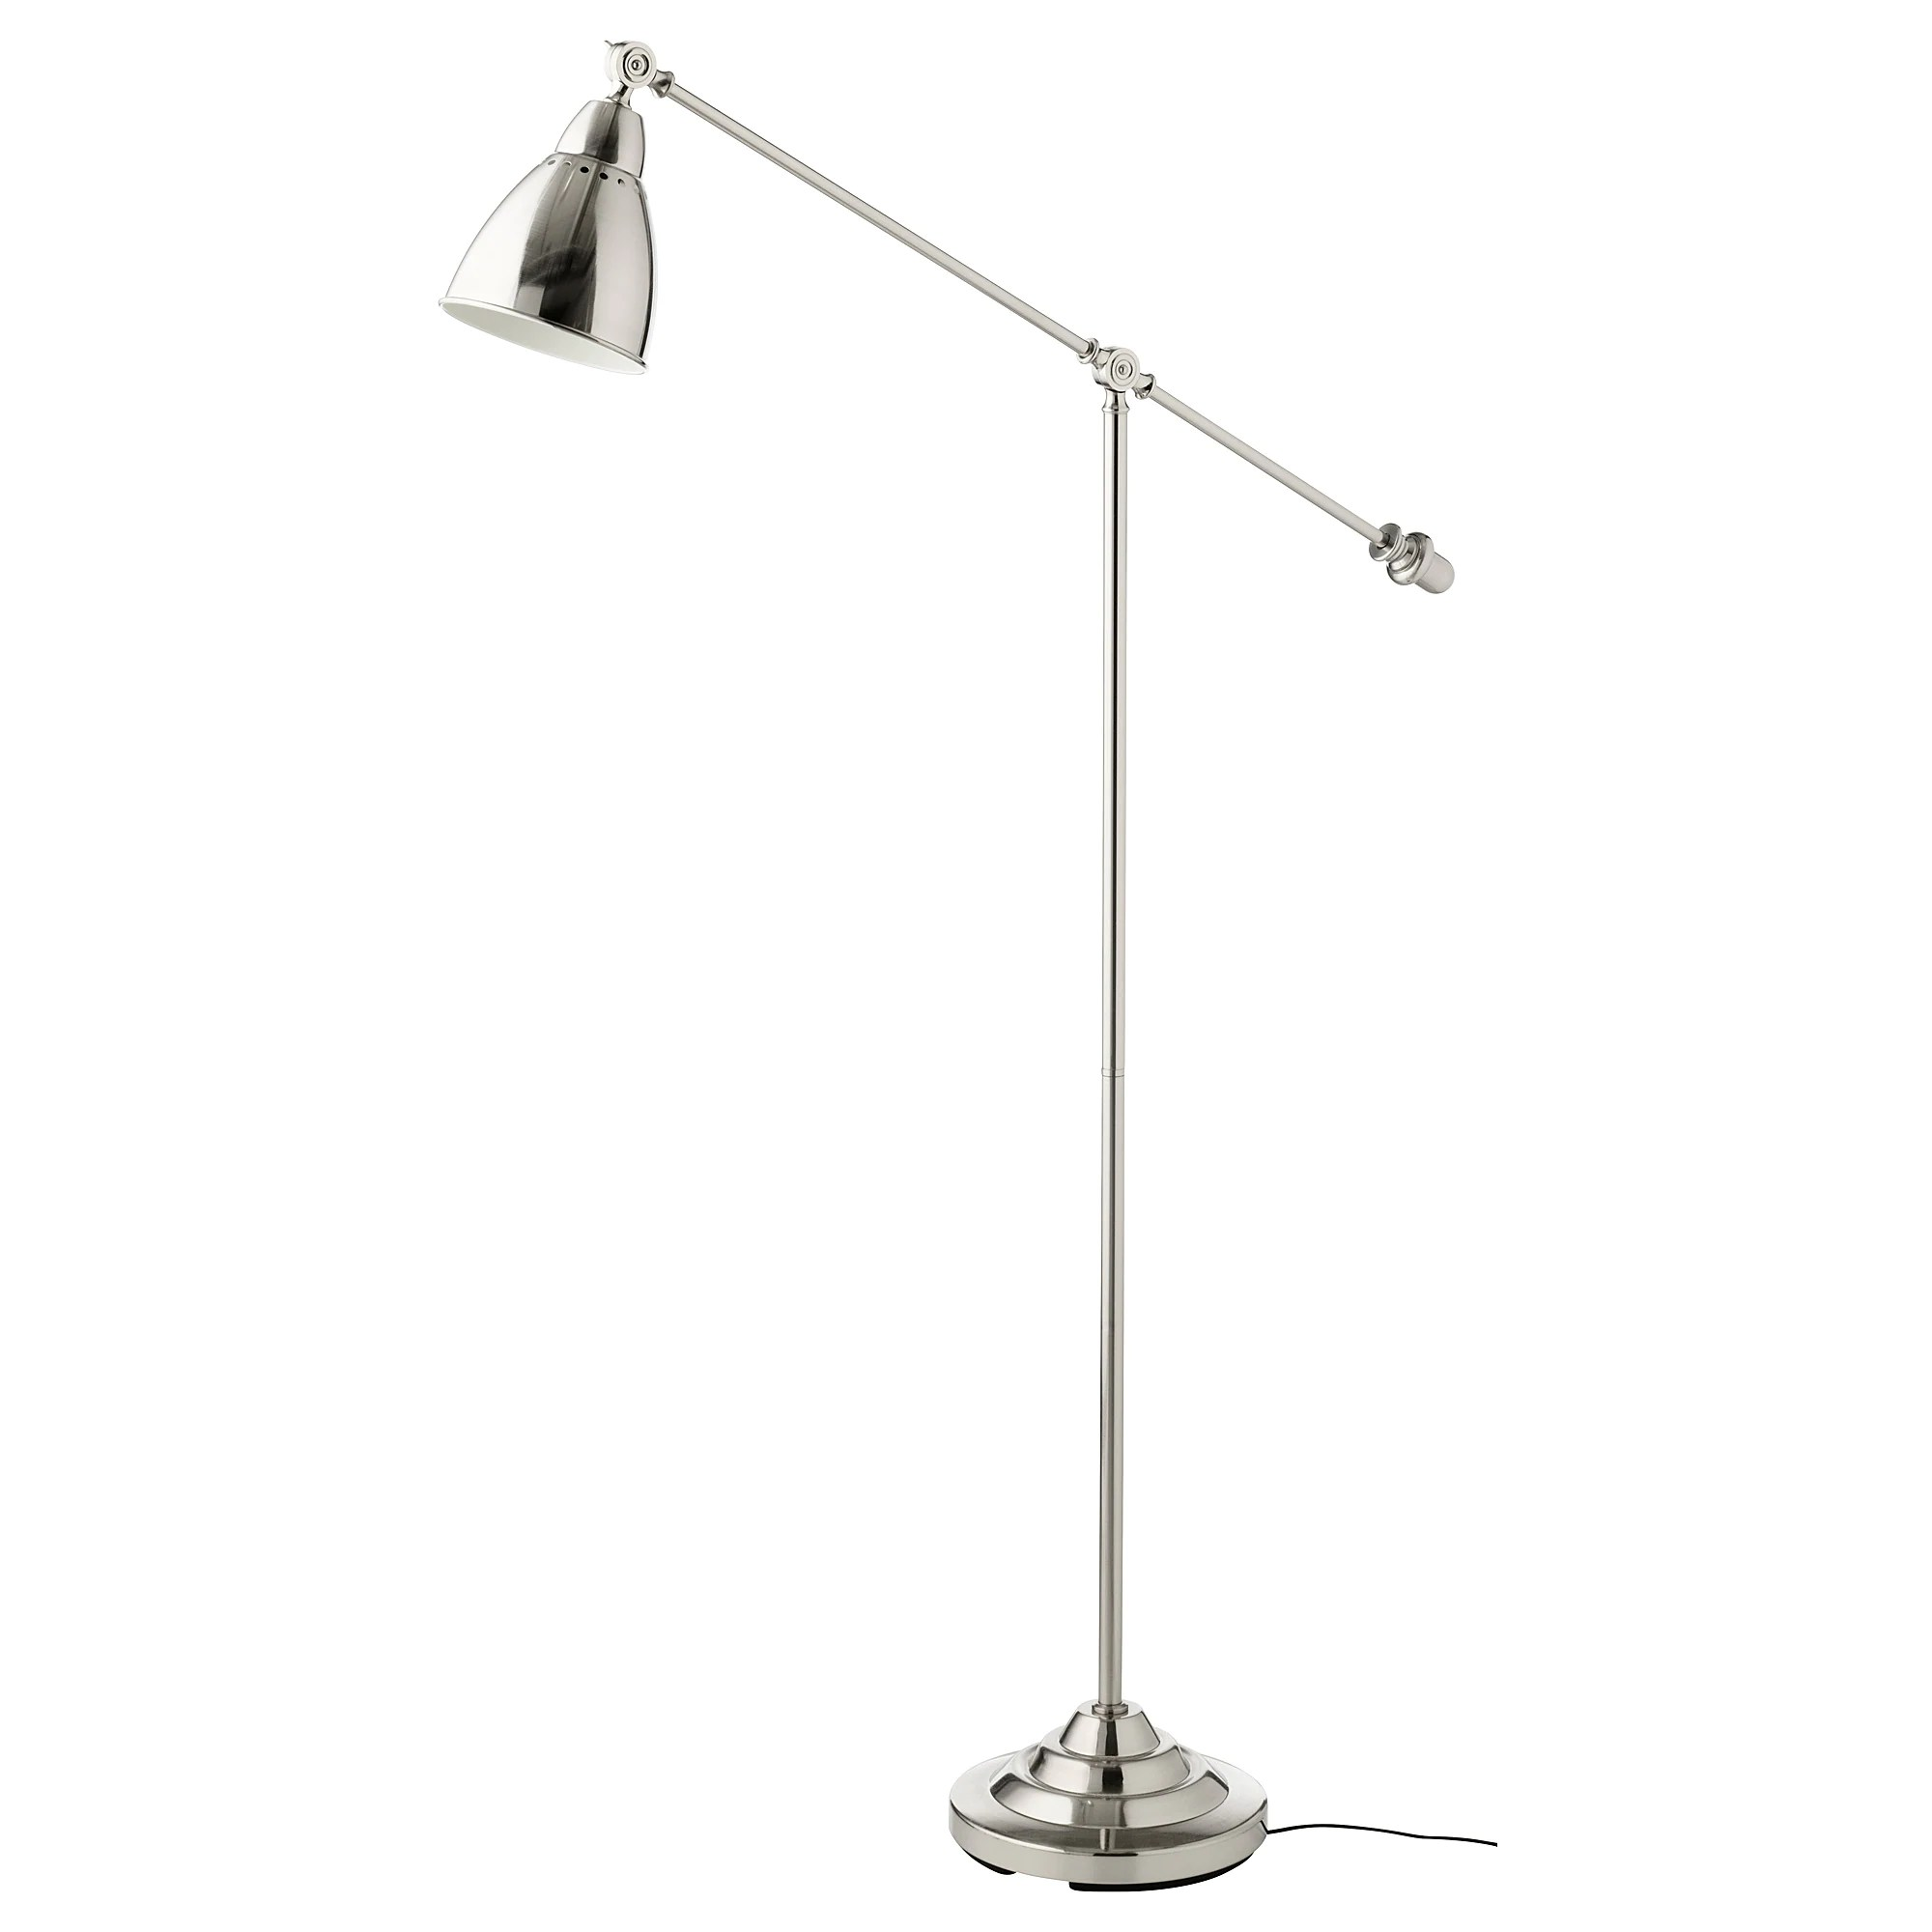 Ikea Reading Lamp Barometer Floor Reading Lamp Nickel Plated